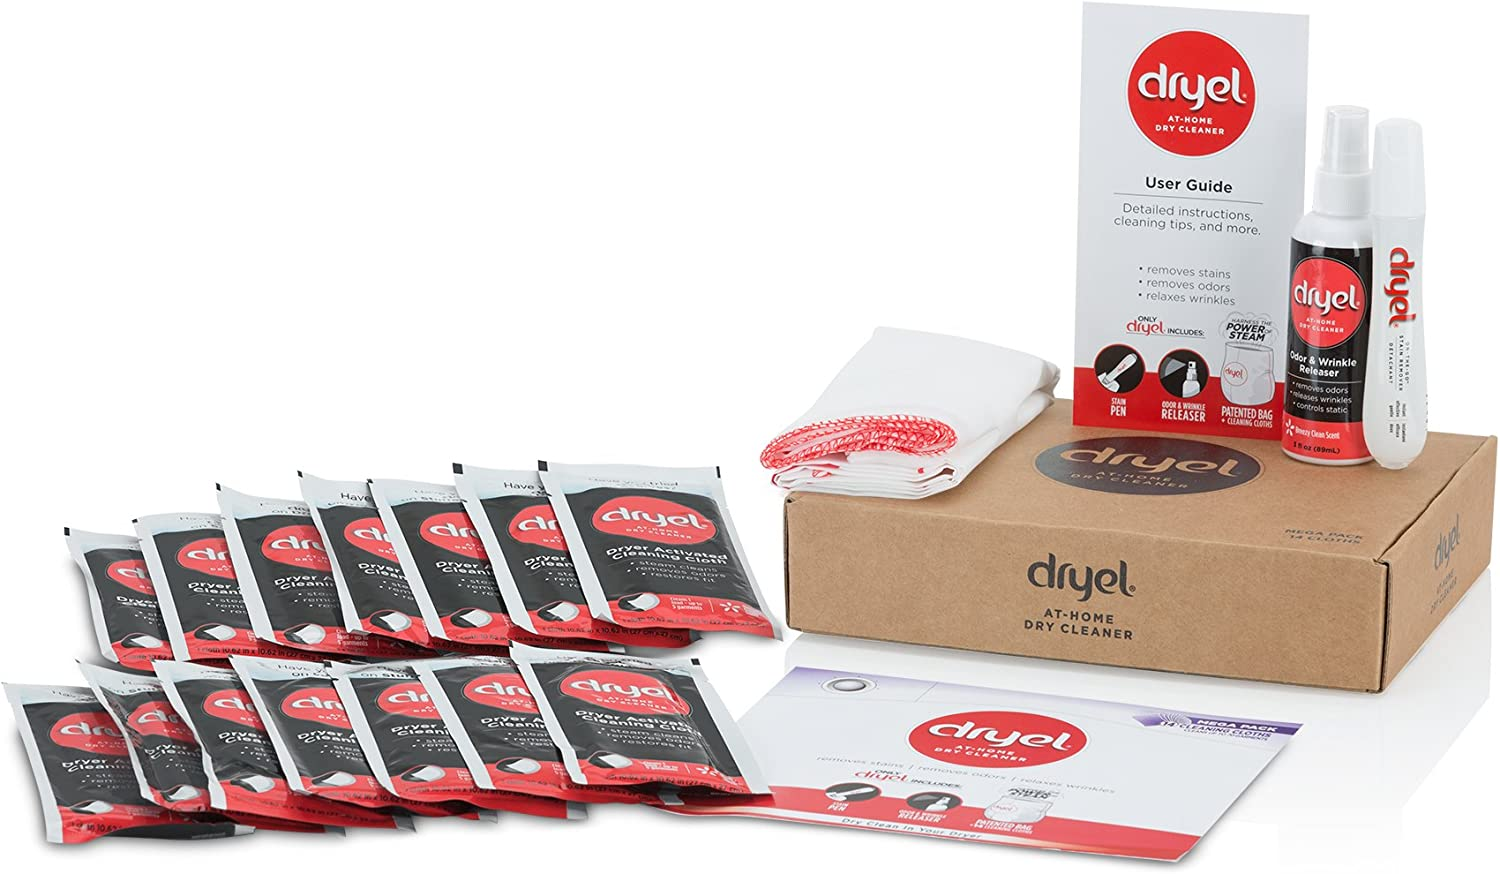 Dryel At-Home Mega Dry Cleaner Starter Kit, Includes Dry Cleaning Cloths and To-Go Stain Removal Pen - 14 Load Capacity